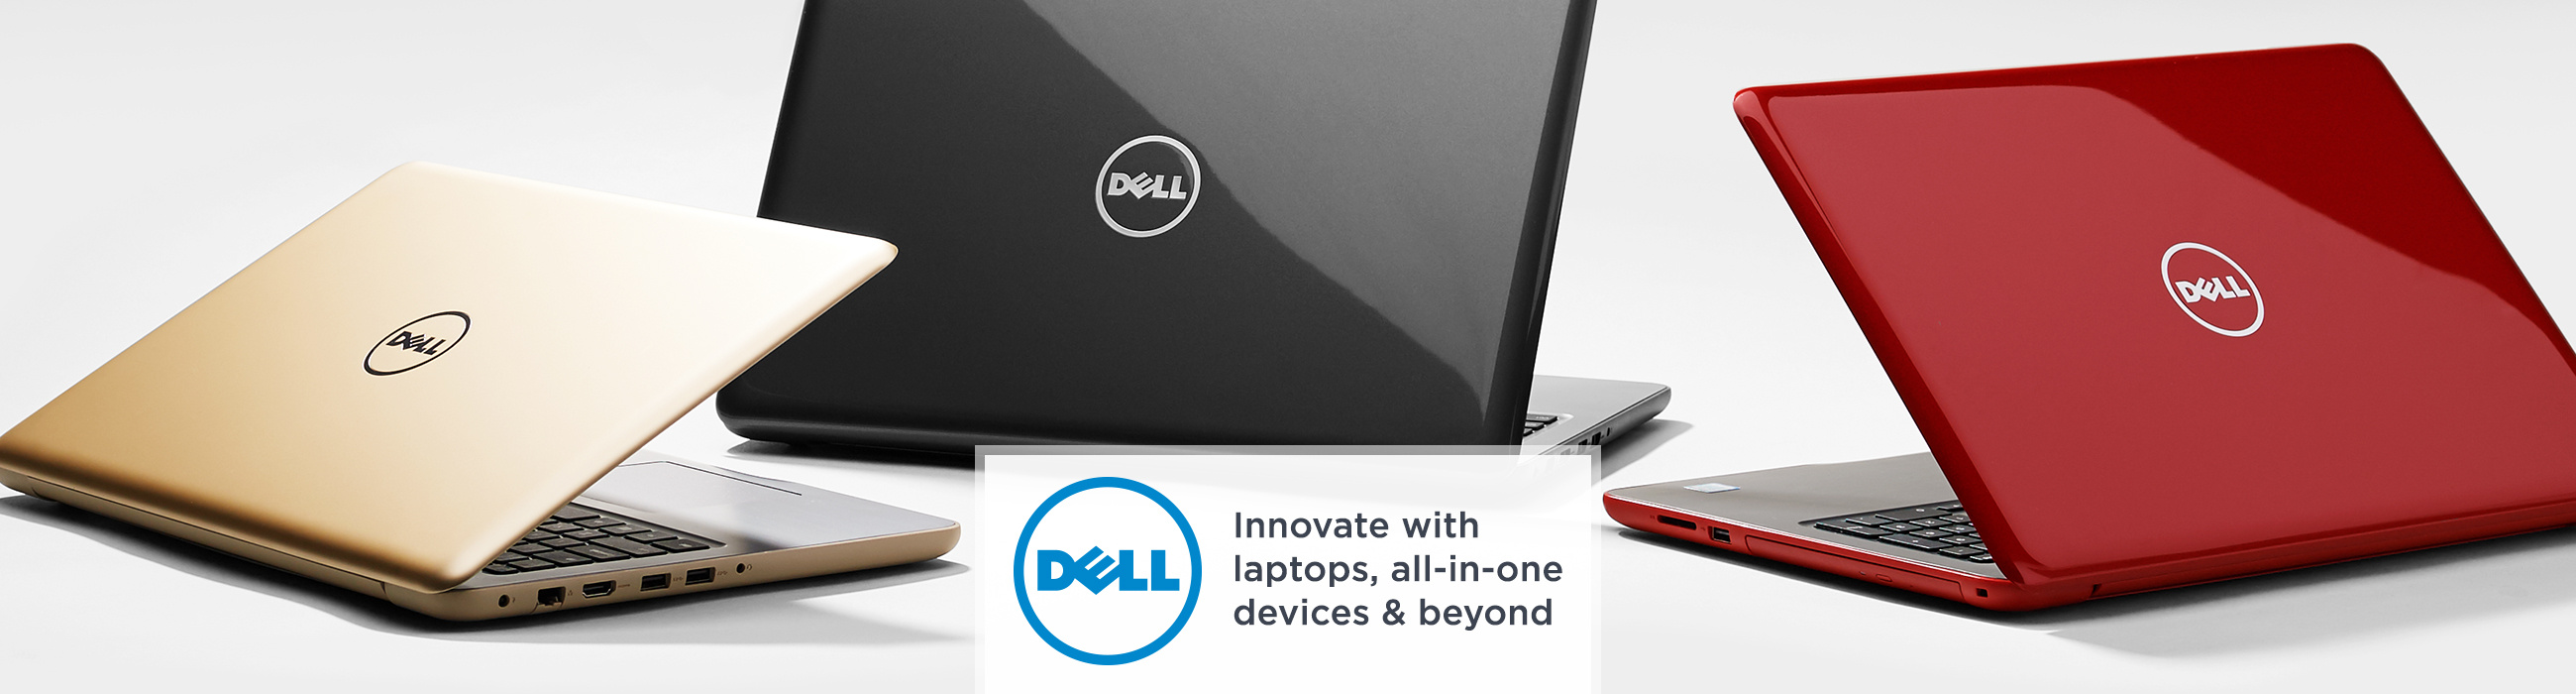 Dell. Innovate with laptops, all-in-one devices & beyond